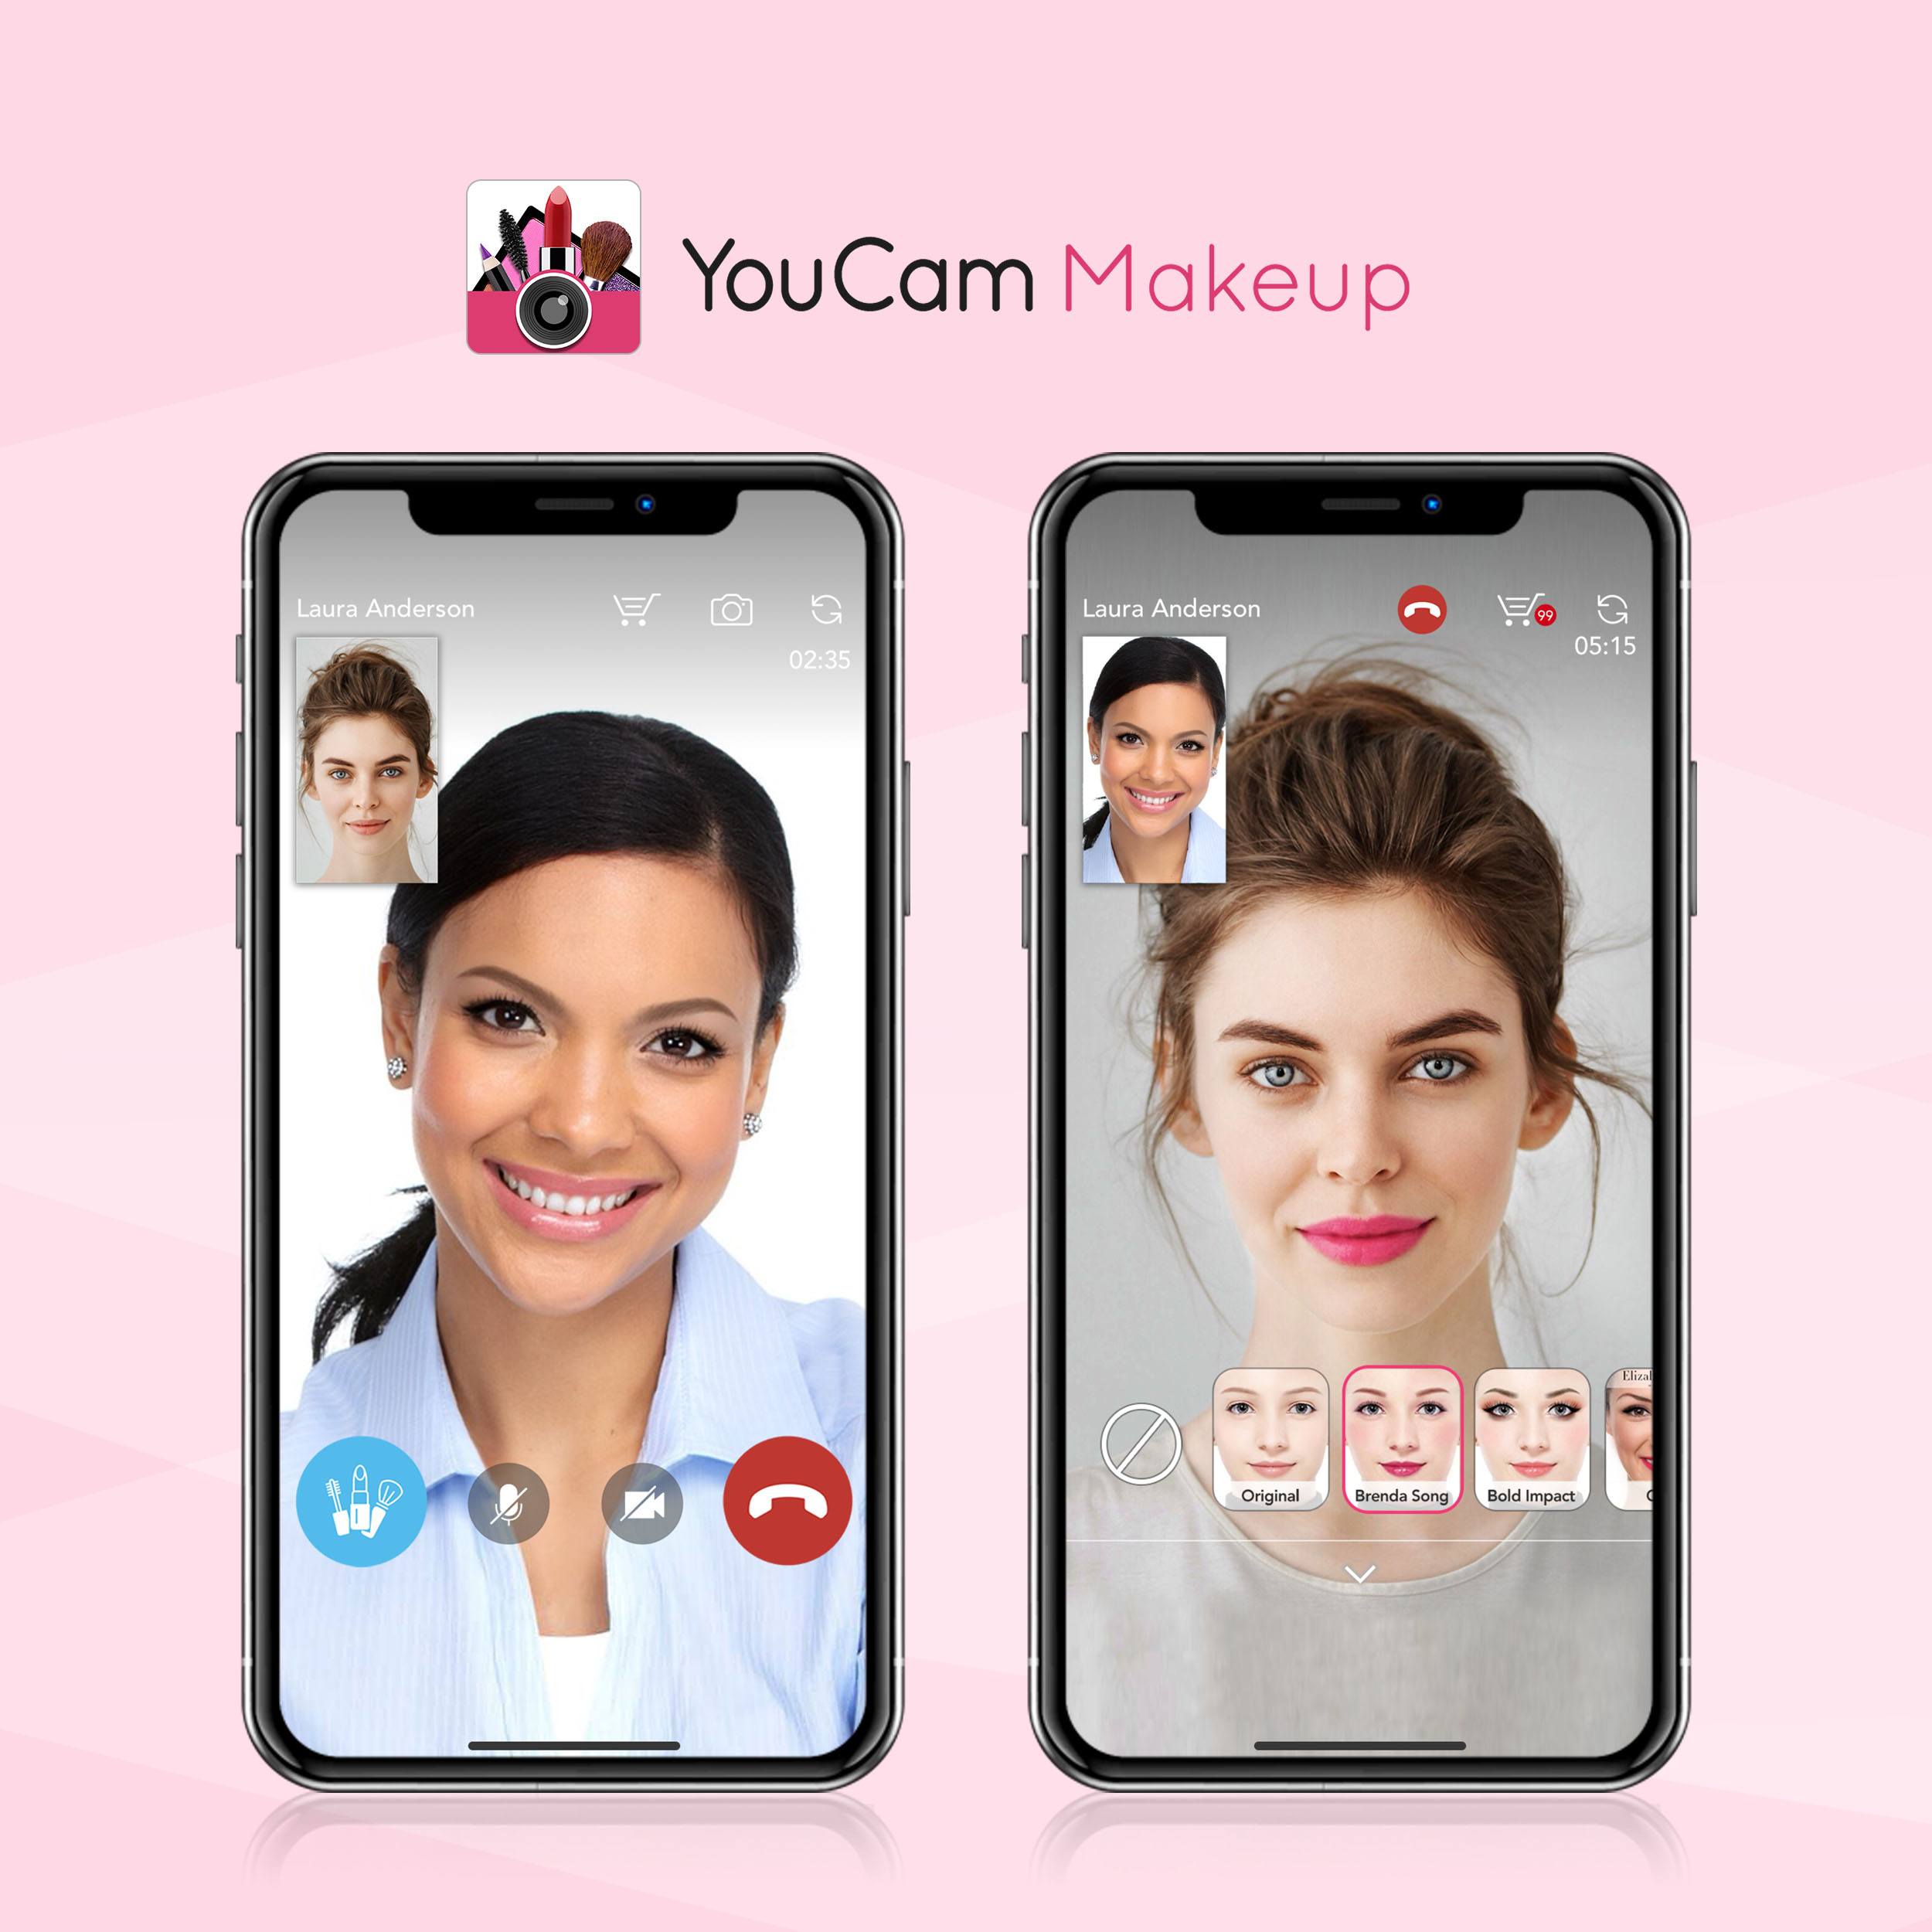 youcam perfect corp ar augmented reality cosmetics technology